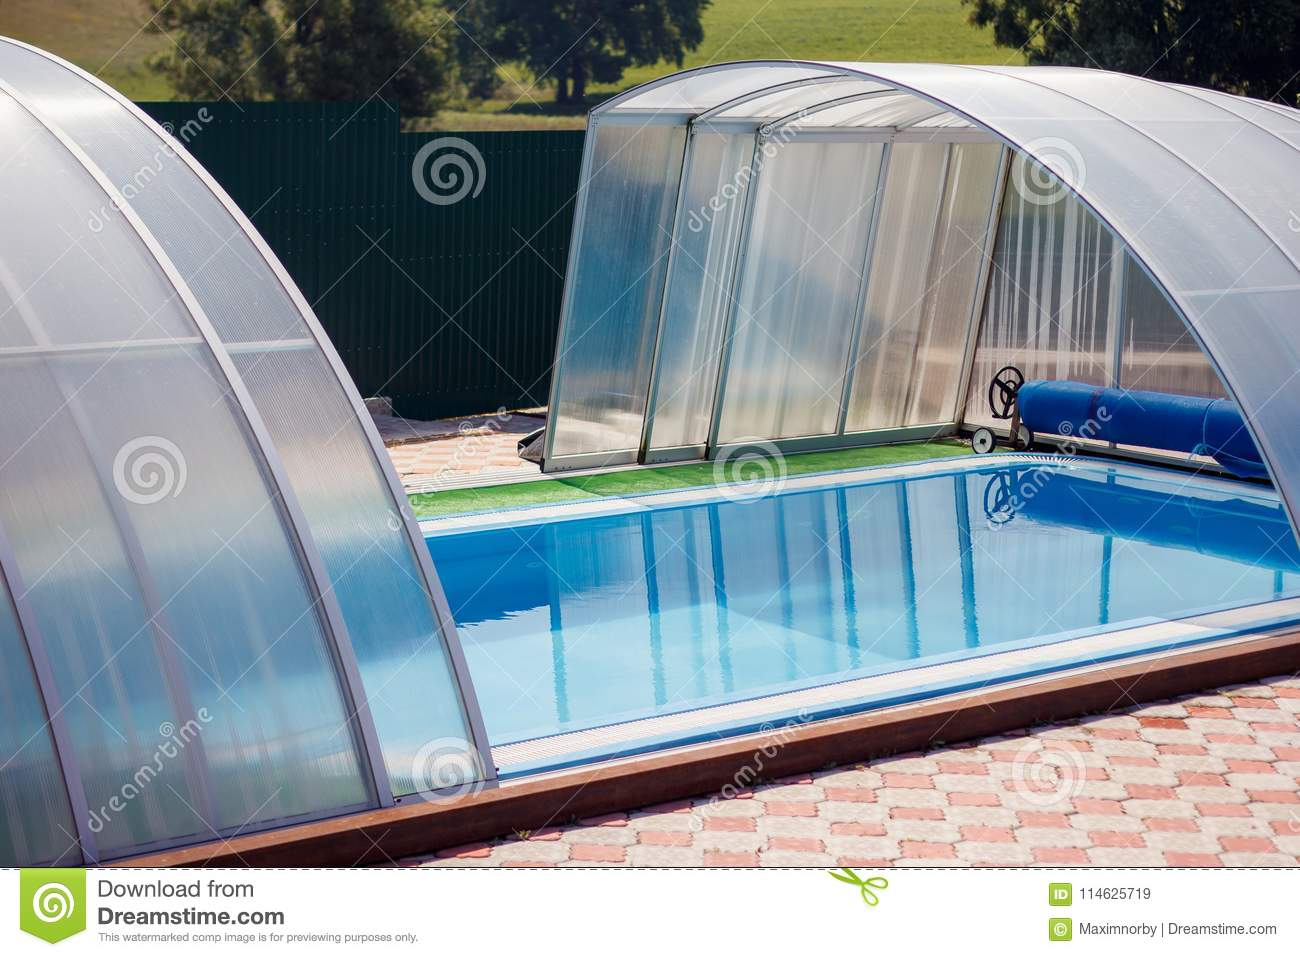 A Small Blue Swimming Pool With Water Under A Canopy In The Stre